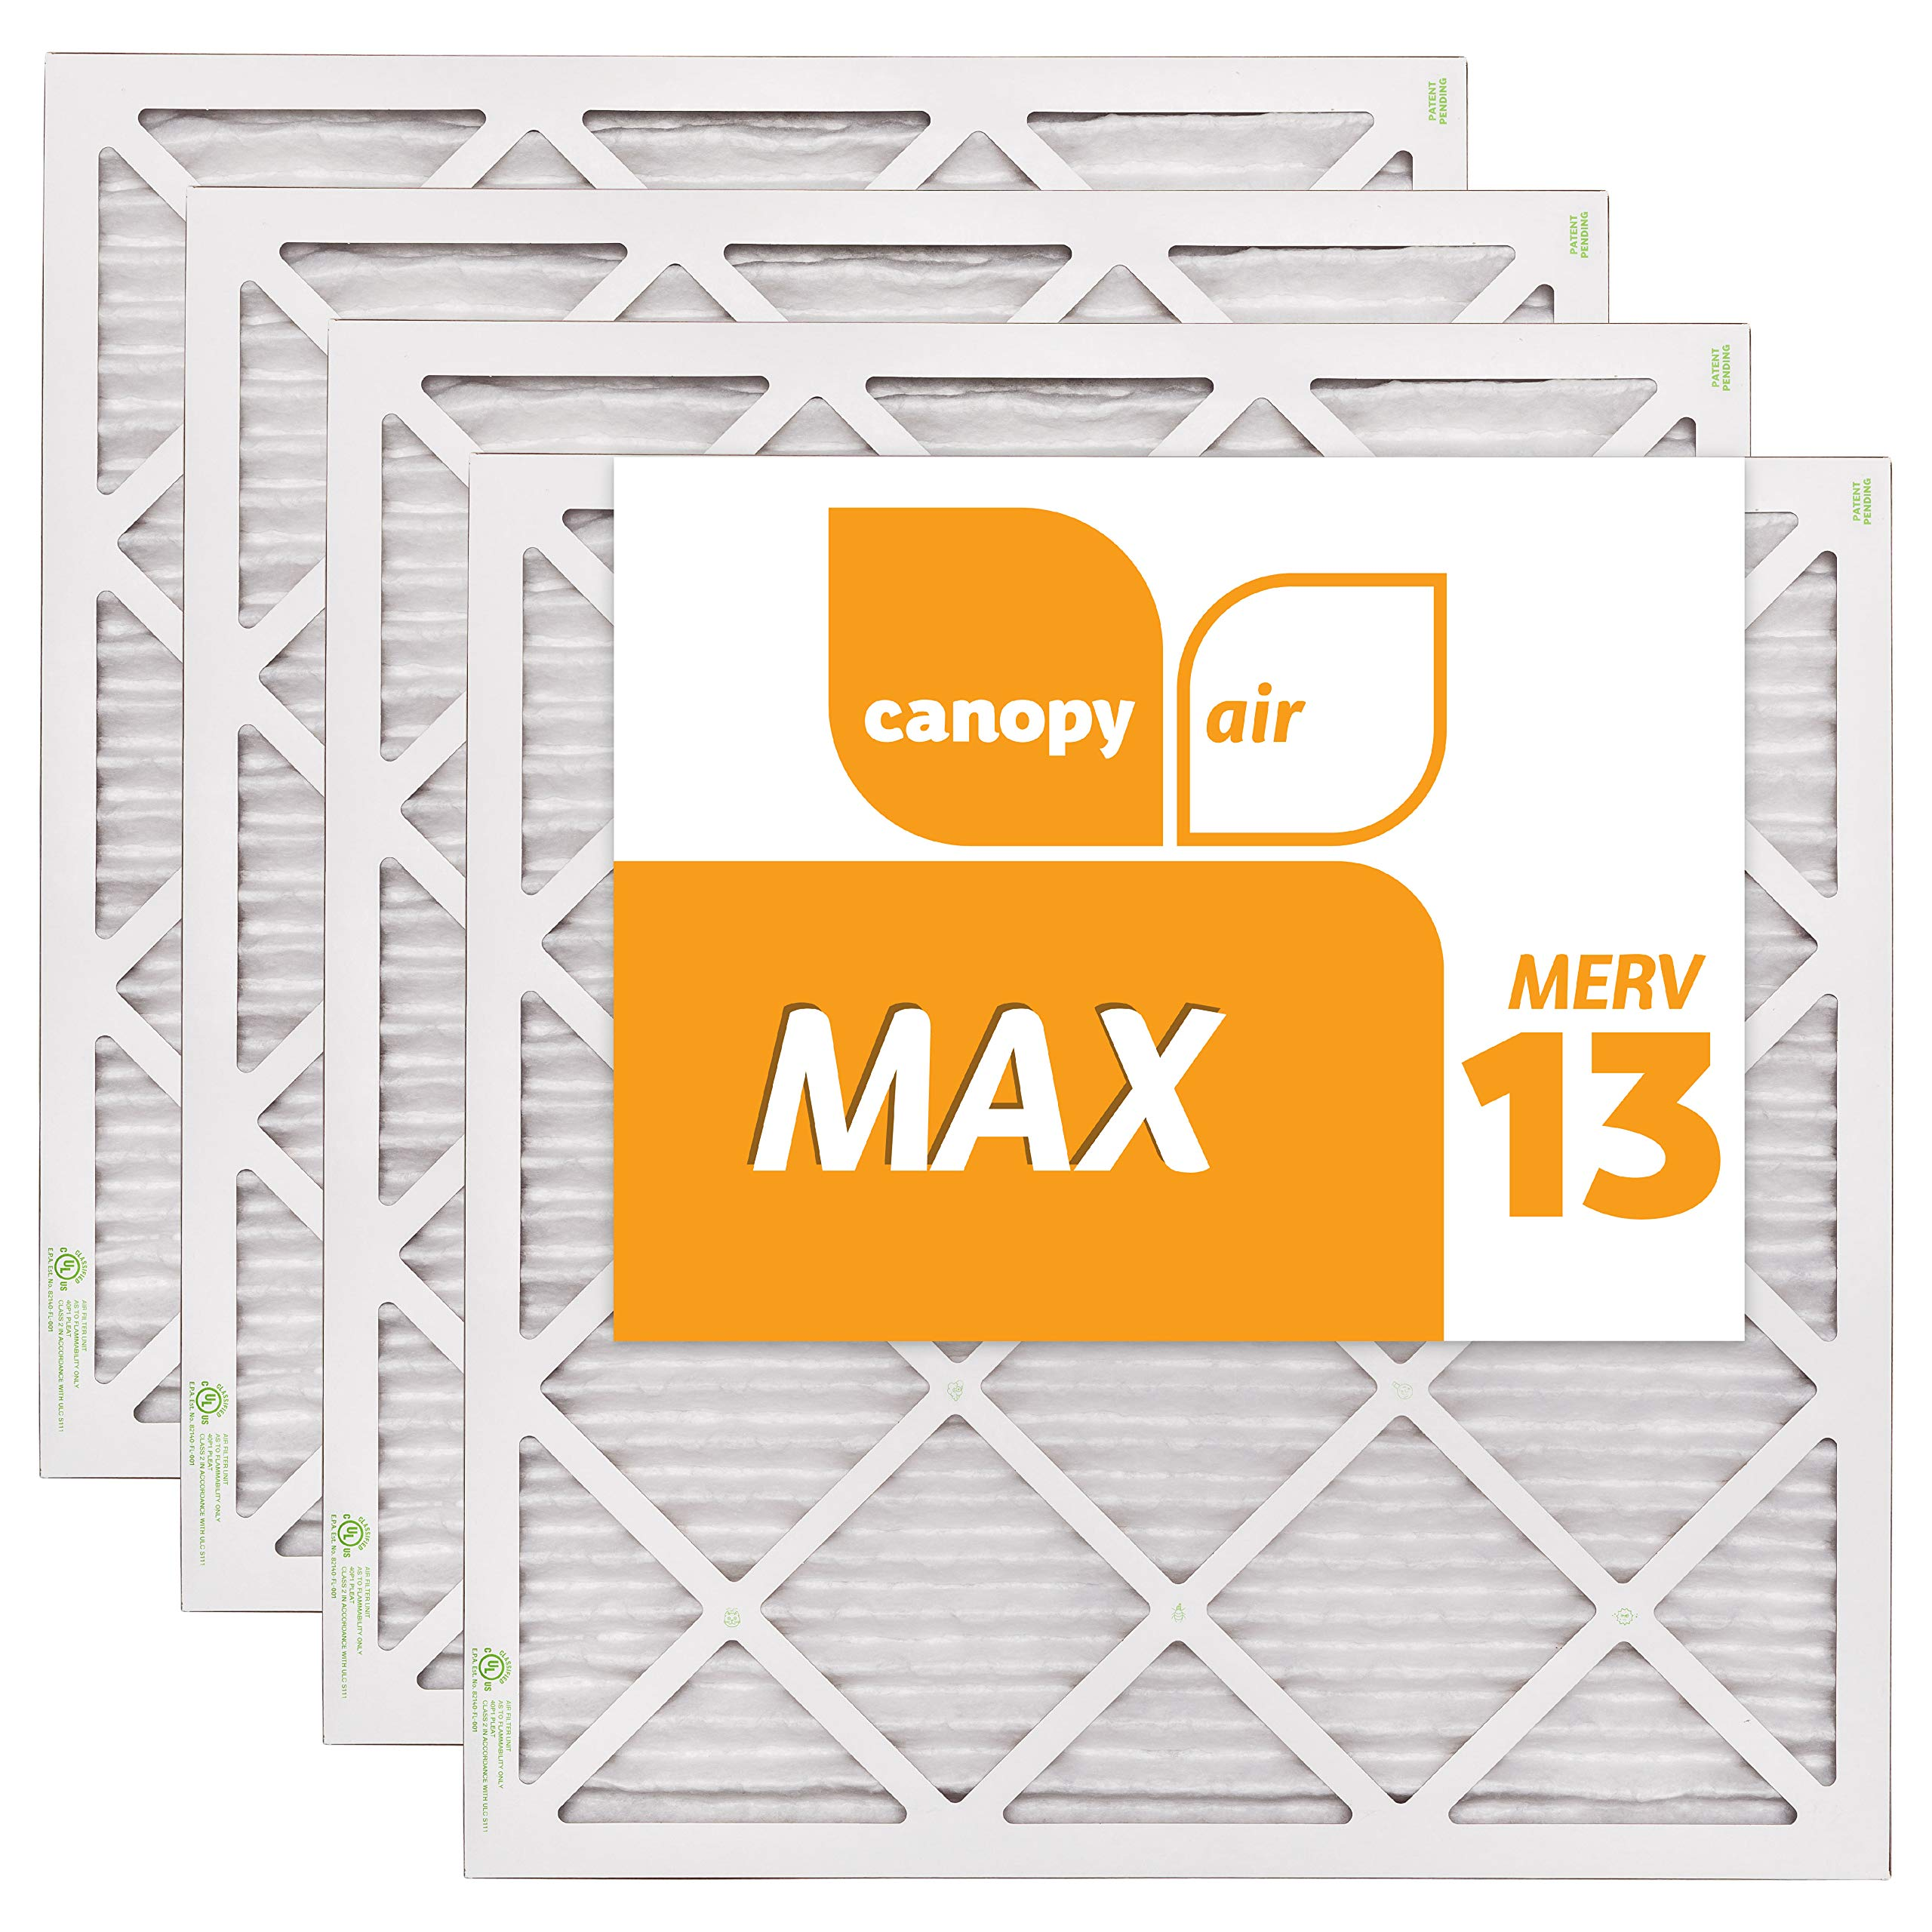 Canopy Air 20x20x1, MAX AC Furnace Air Filter, MERV 13, Made in the USA, 4-Pack (Actual Size 19 1/2'' x 19 1/2'' x 3/4'')